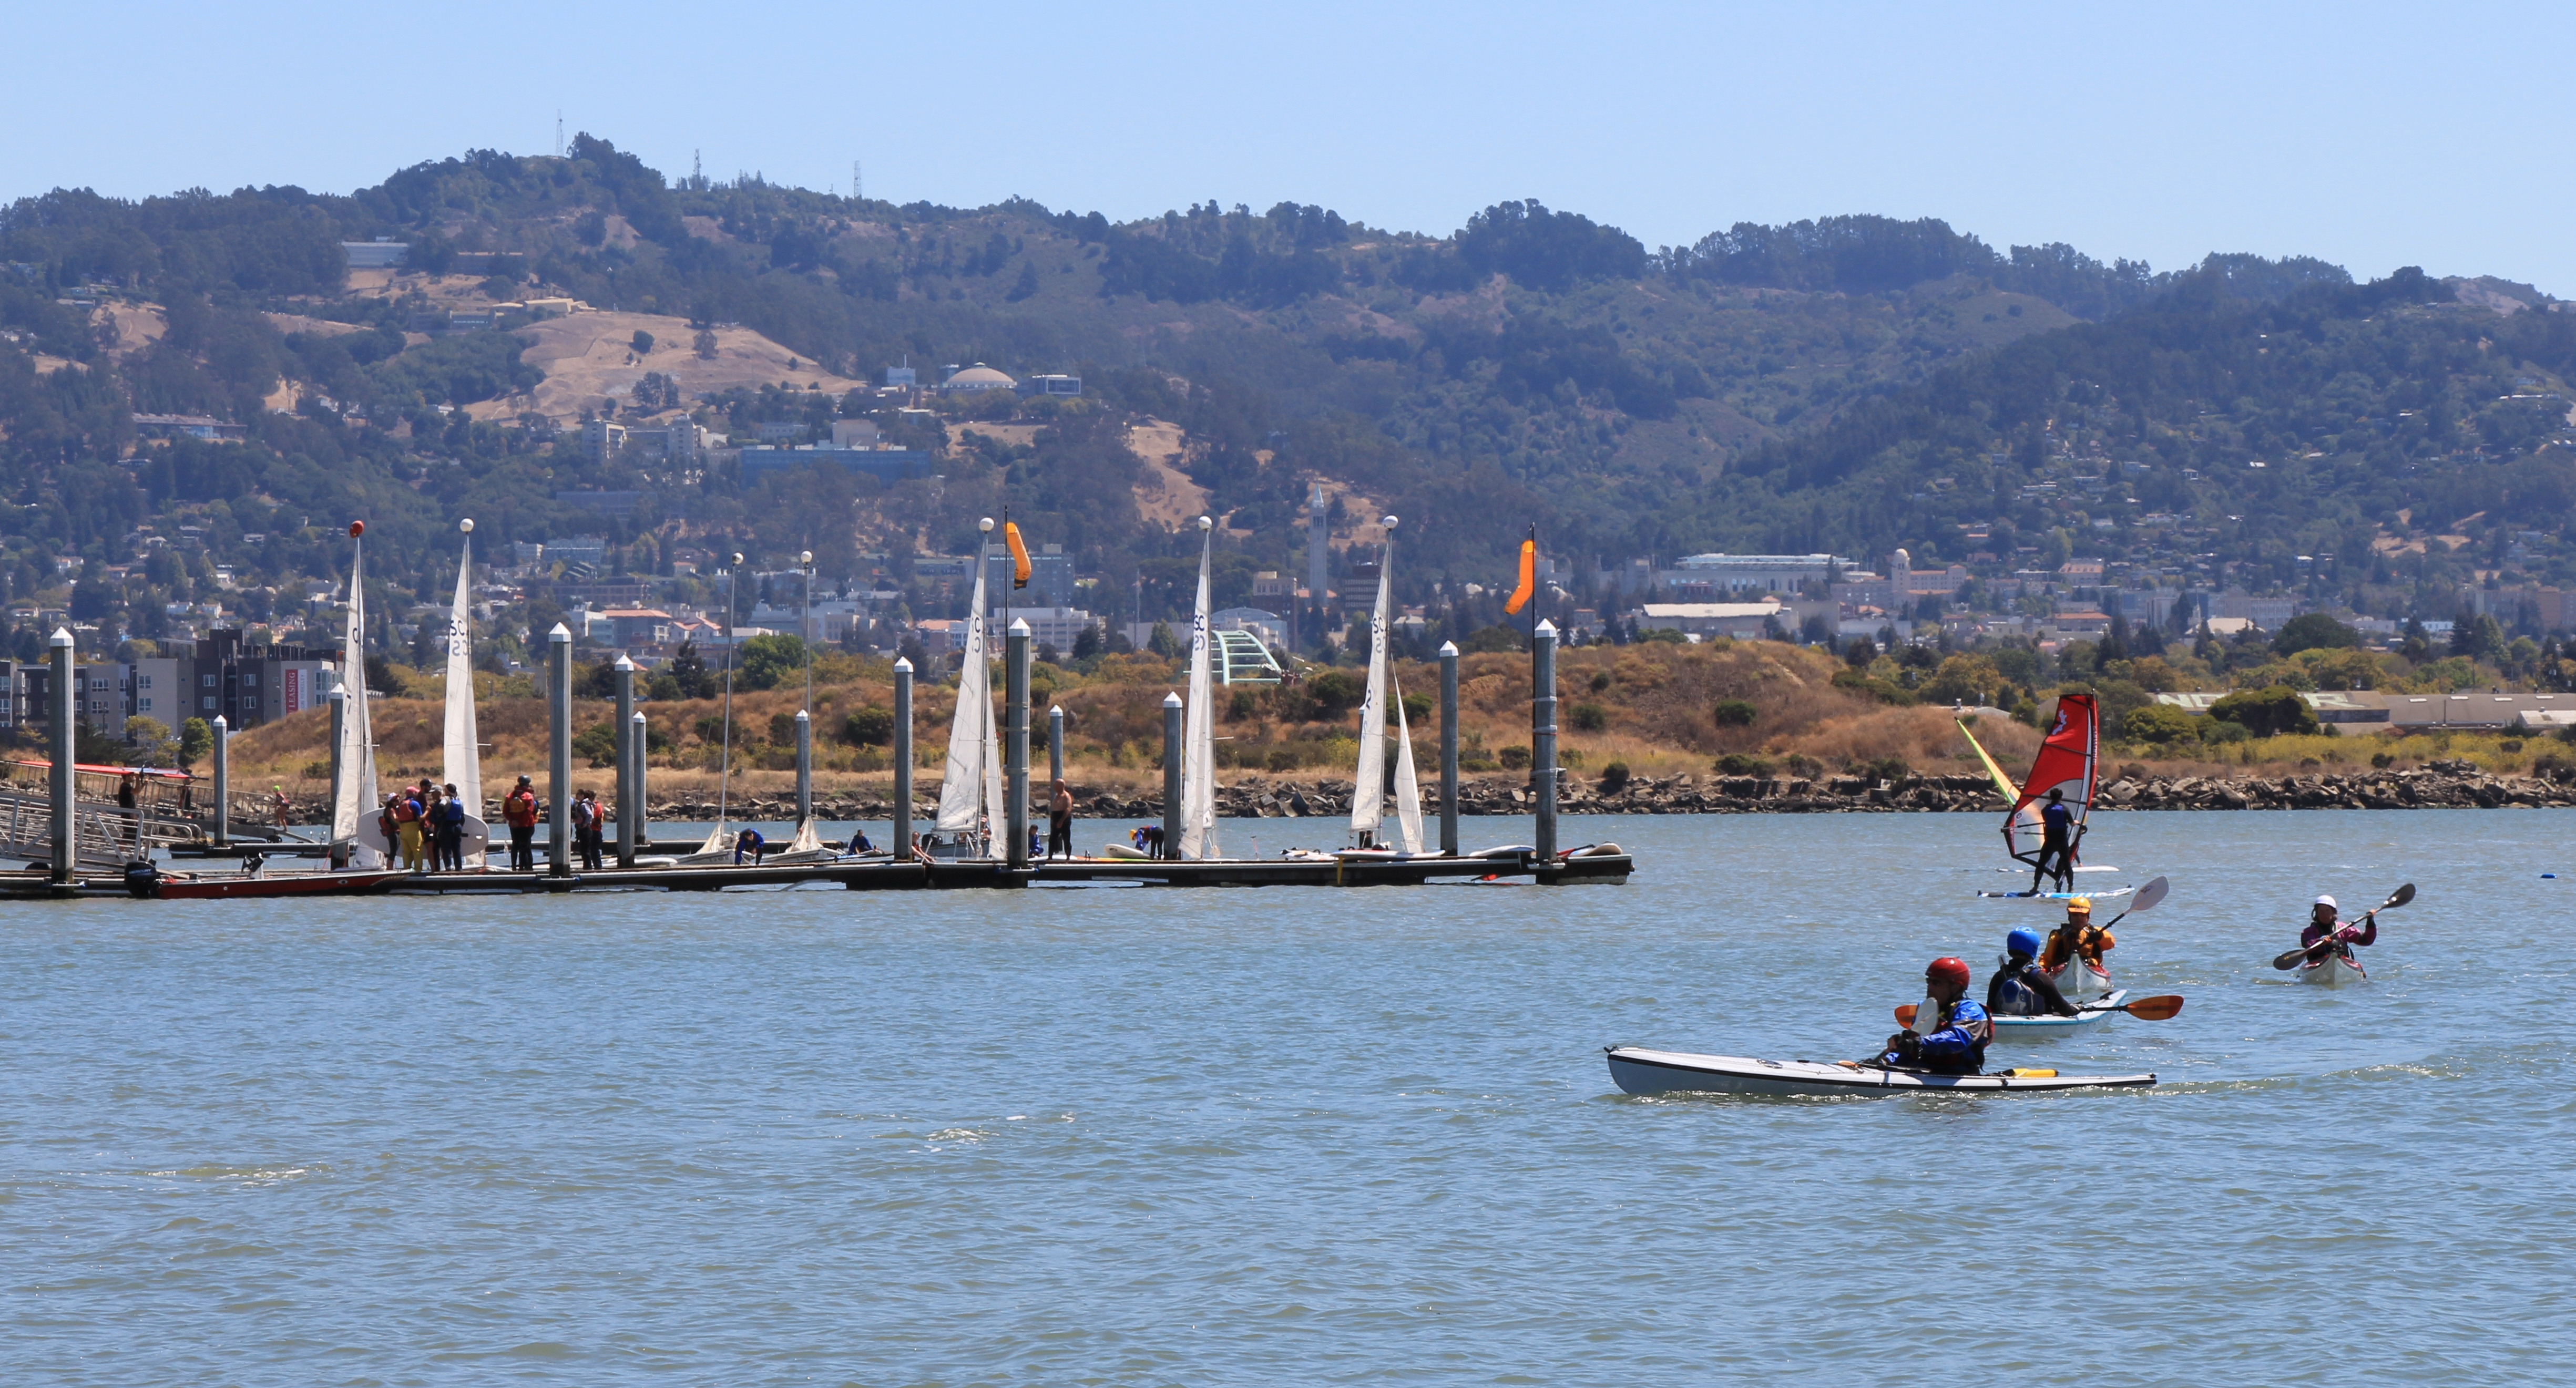 kayakers paddling in front of marina, with hills beyond